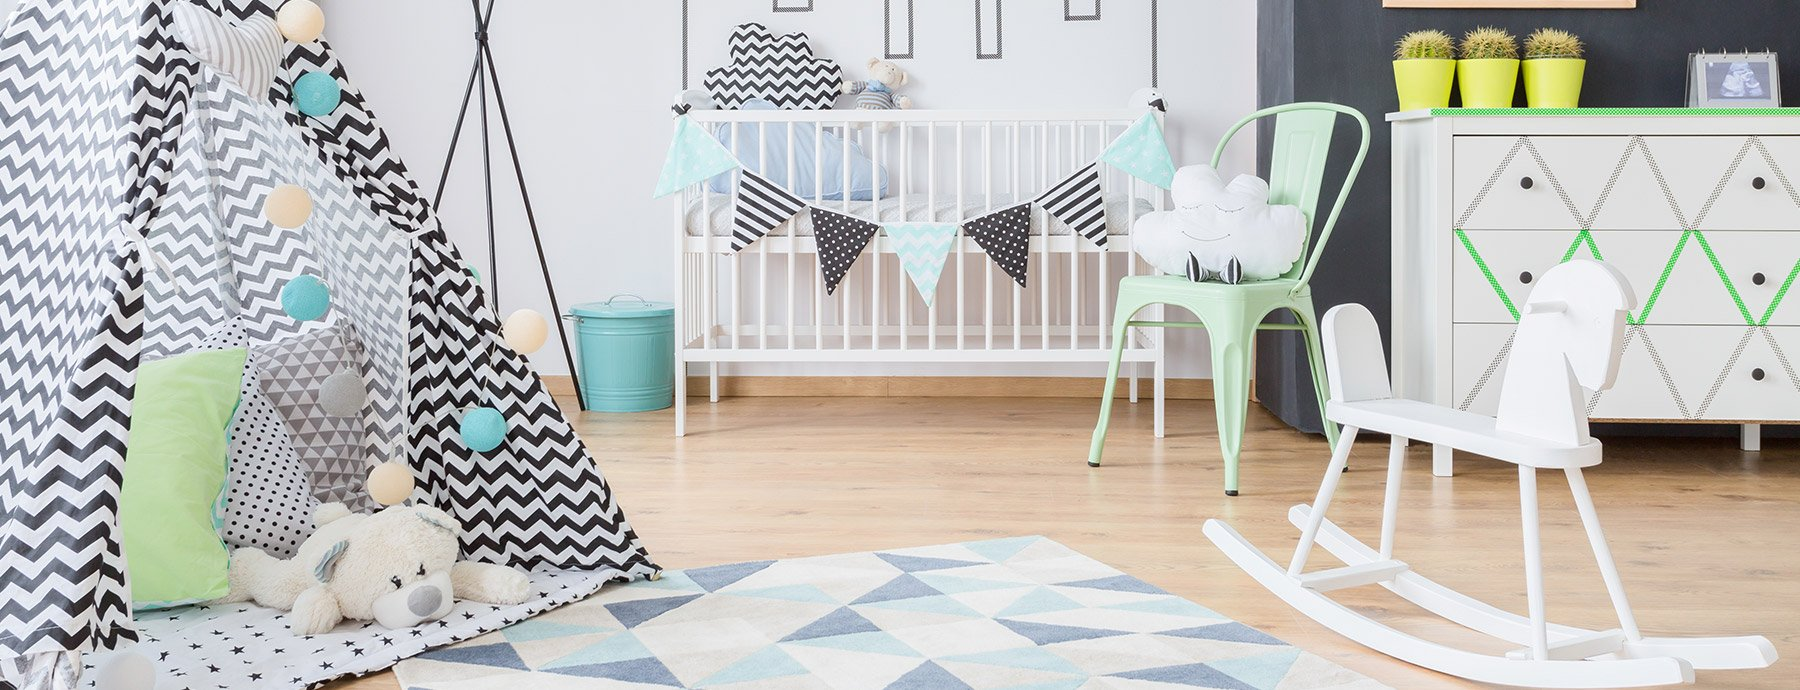 23 Tips To Create A Gender Neutral Nursery The Moms Insights